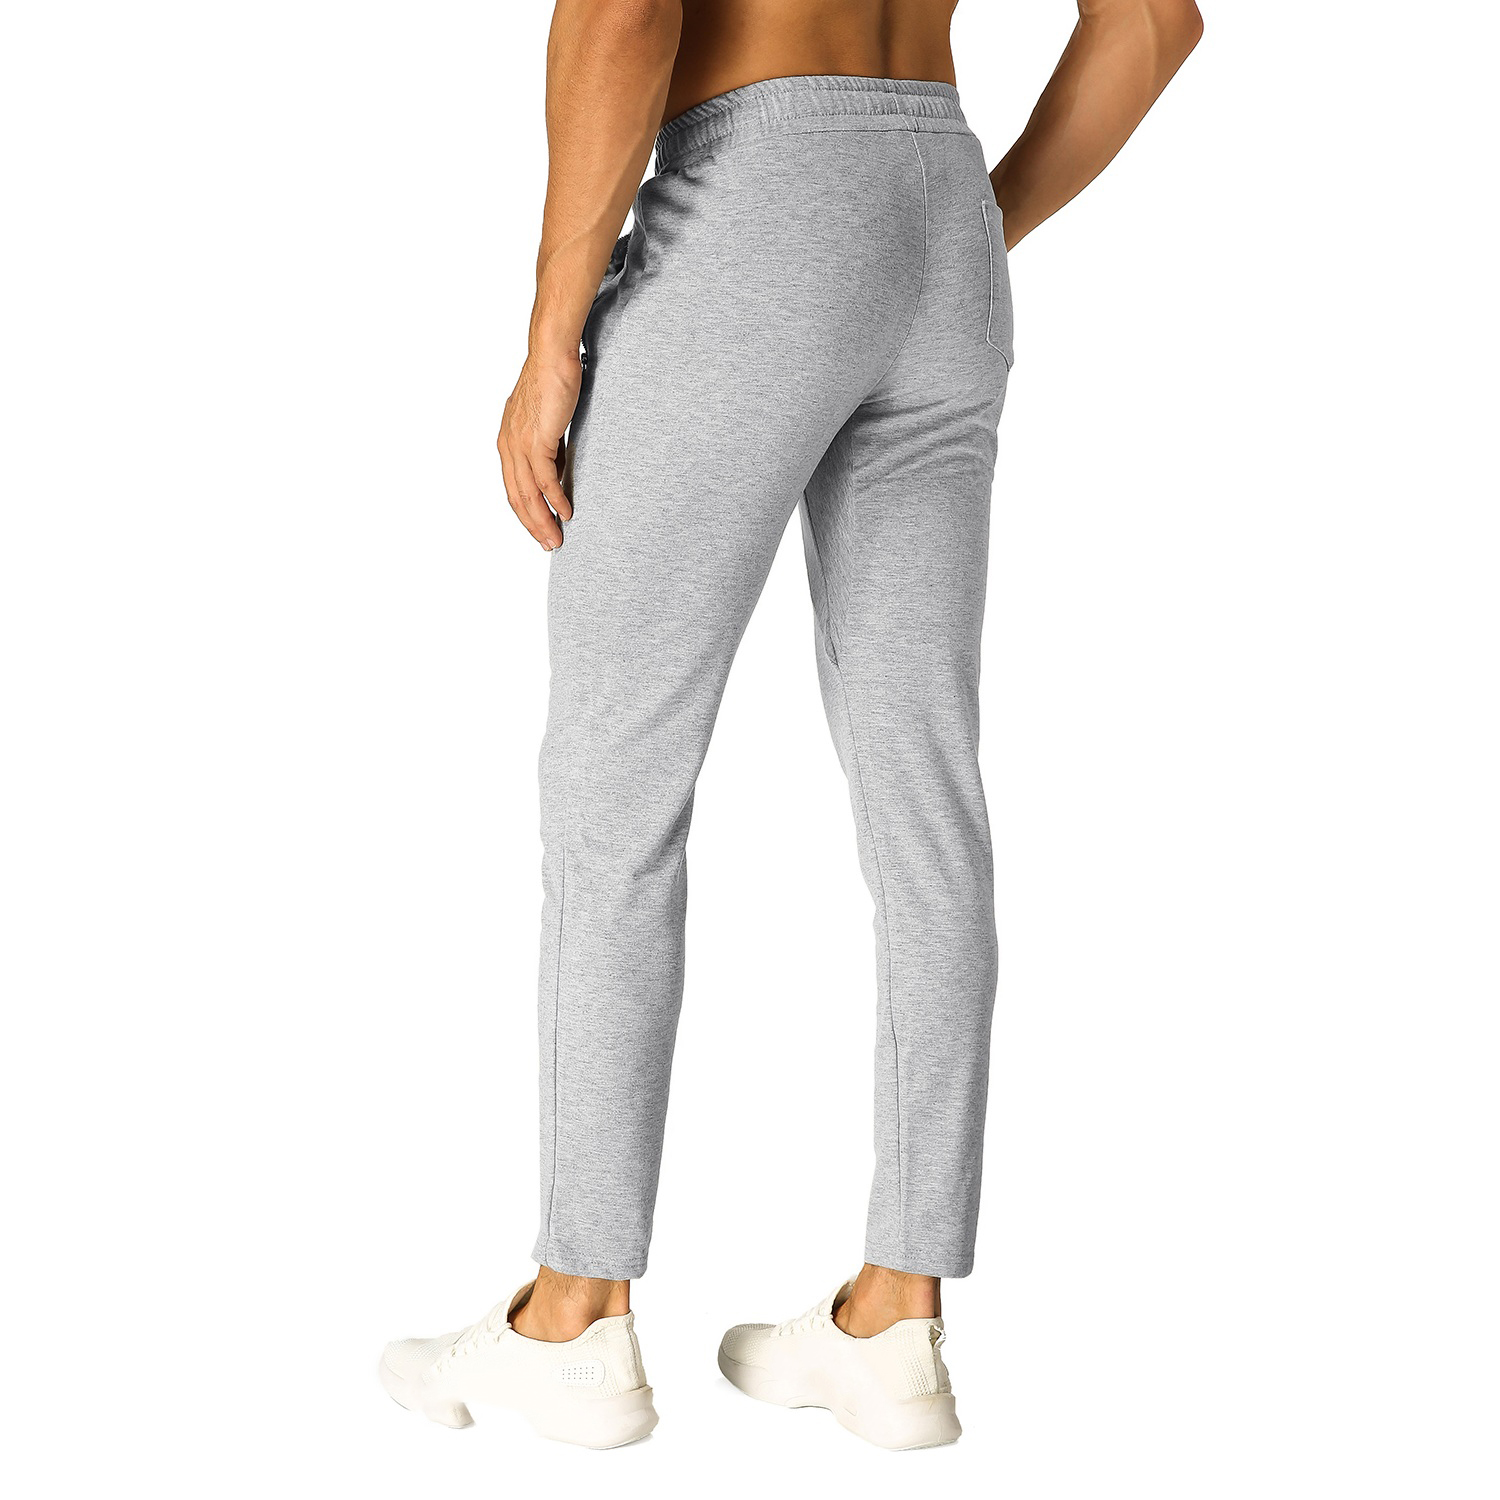 Men's Jogger Pants Sweatpants Casual Trousers Tracksuit Bottoms Sport Fitness Gym